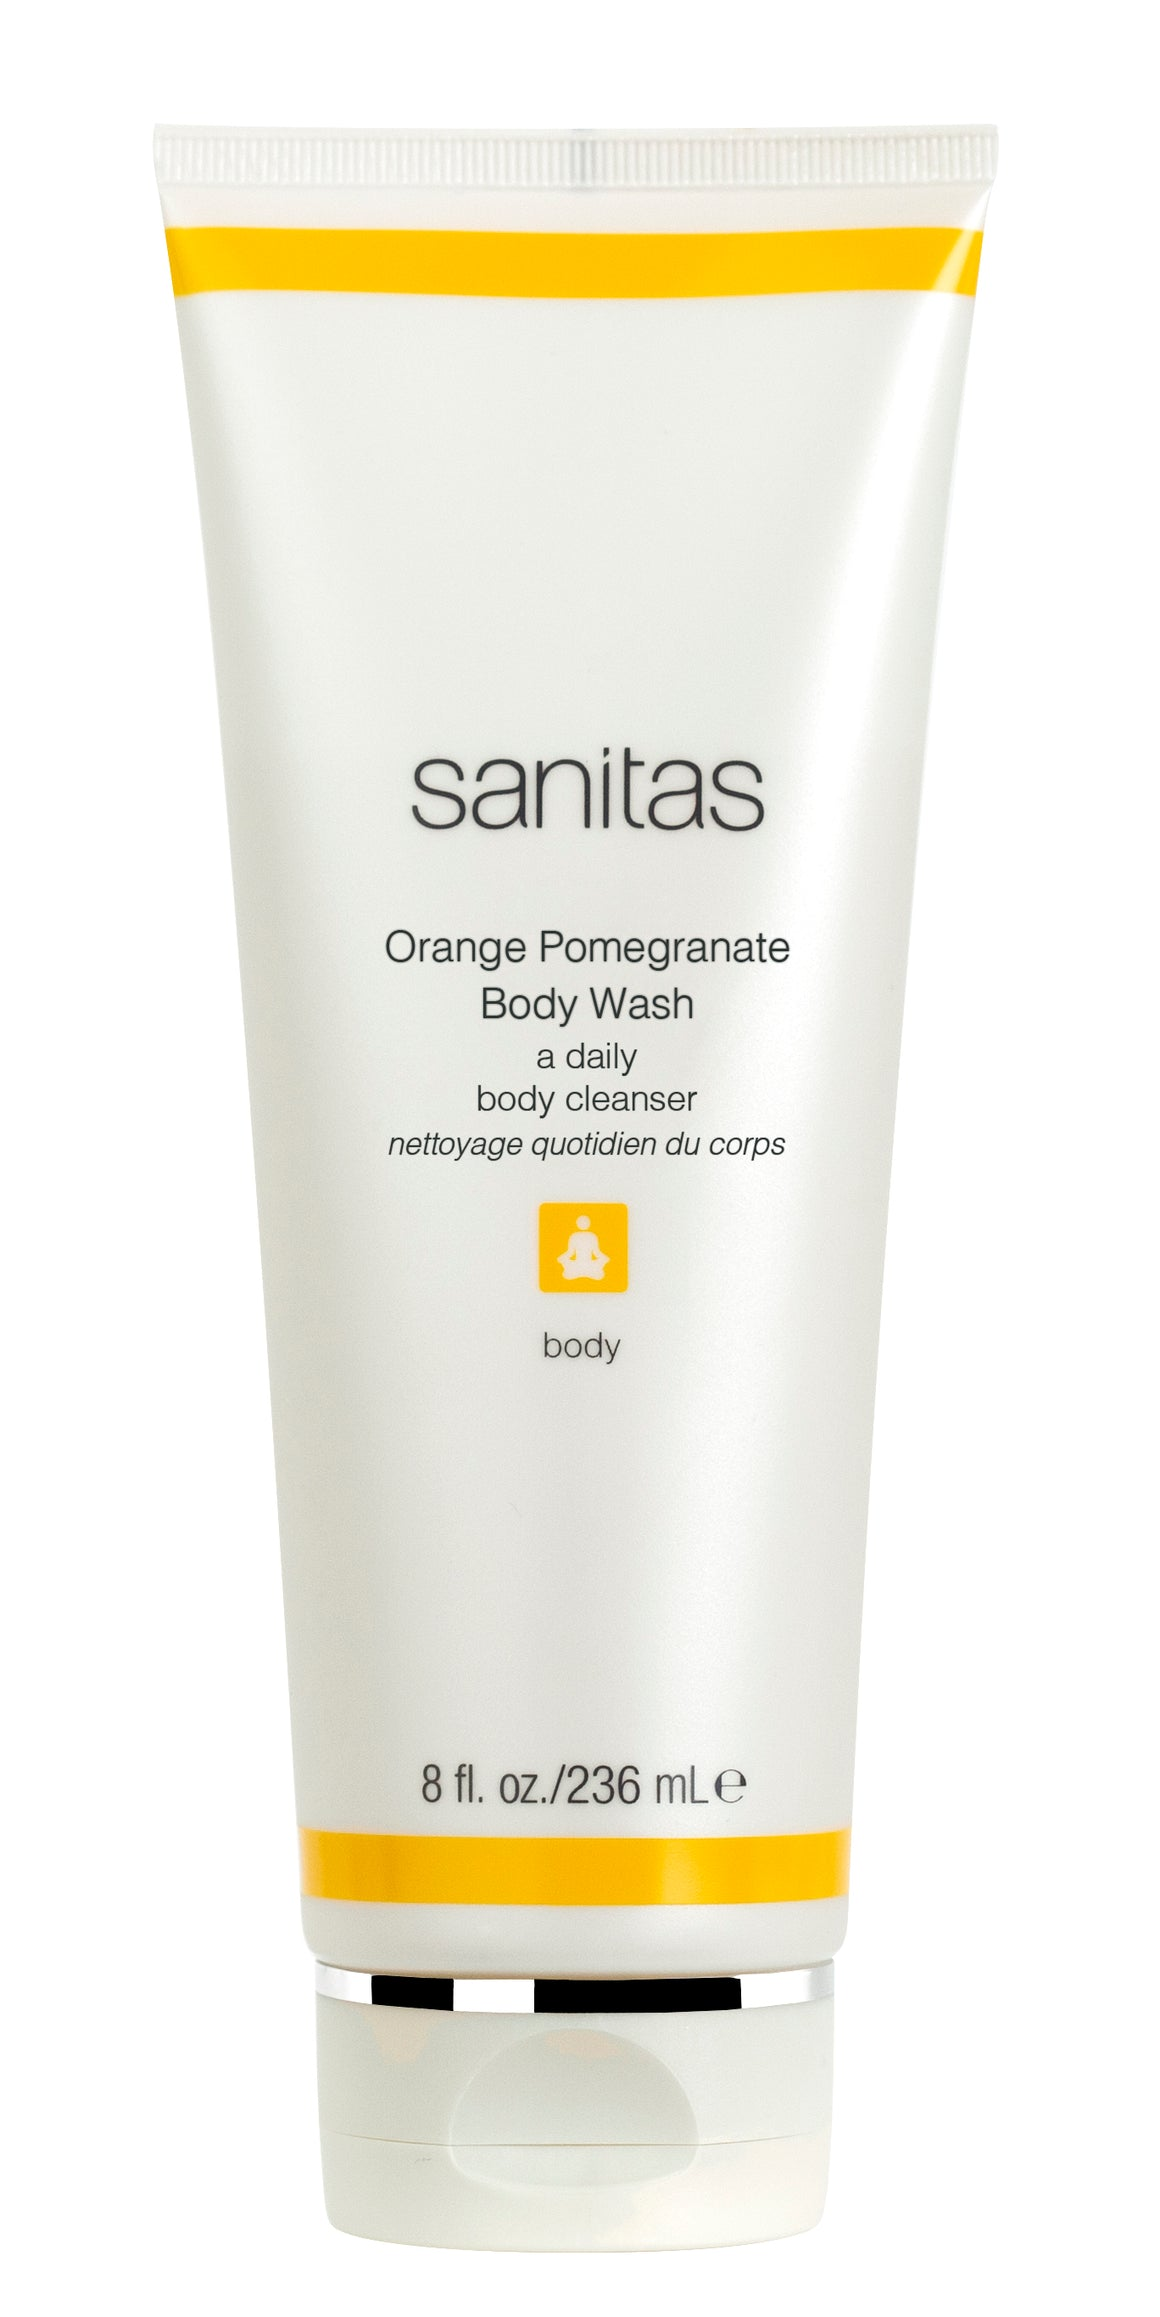 Sanitas Orange and Pomegranate Body Wash (a daily body cleanser)